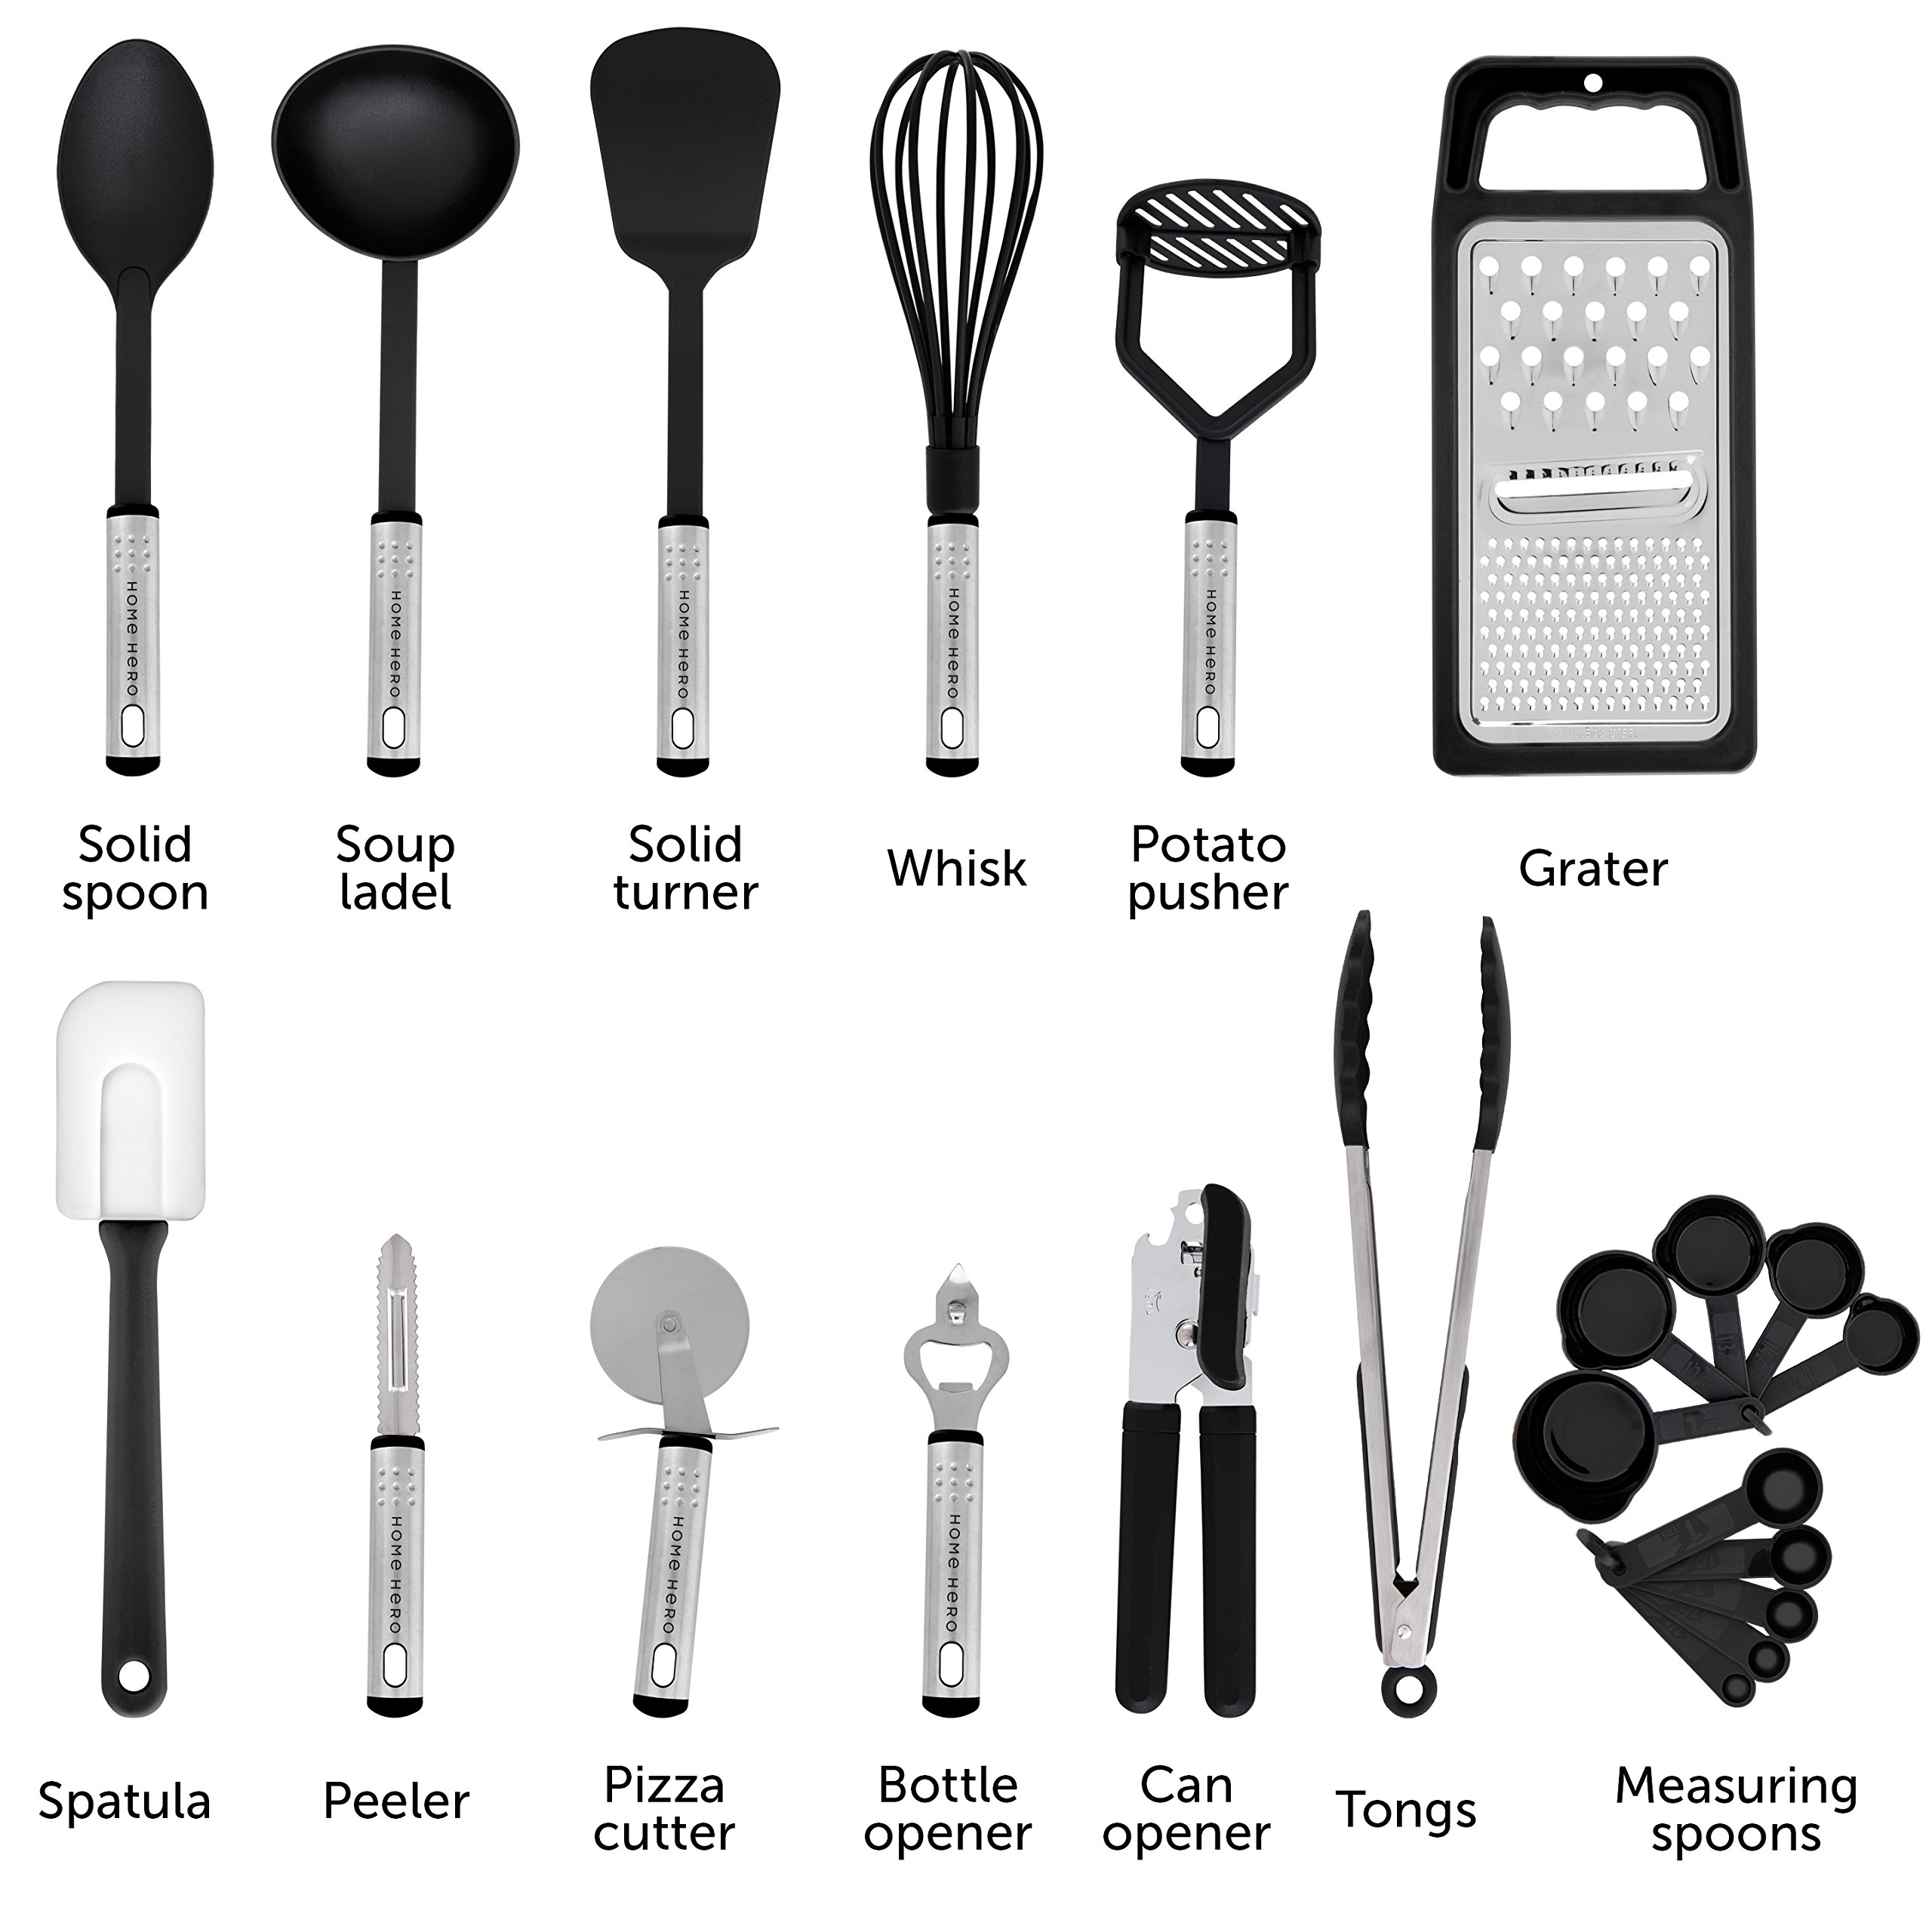 Kitchen Utensils Pictures And Names: 23 Nylon Cooking Utensils